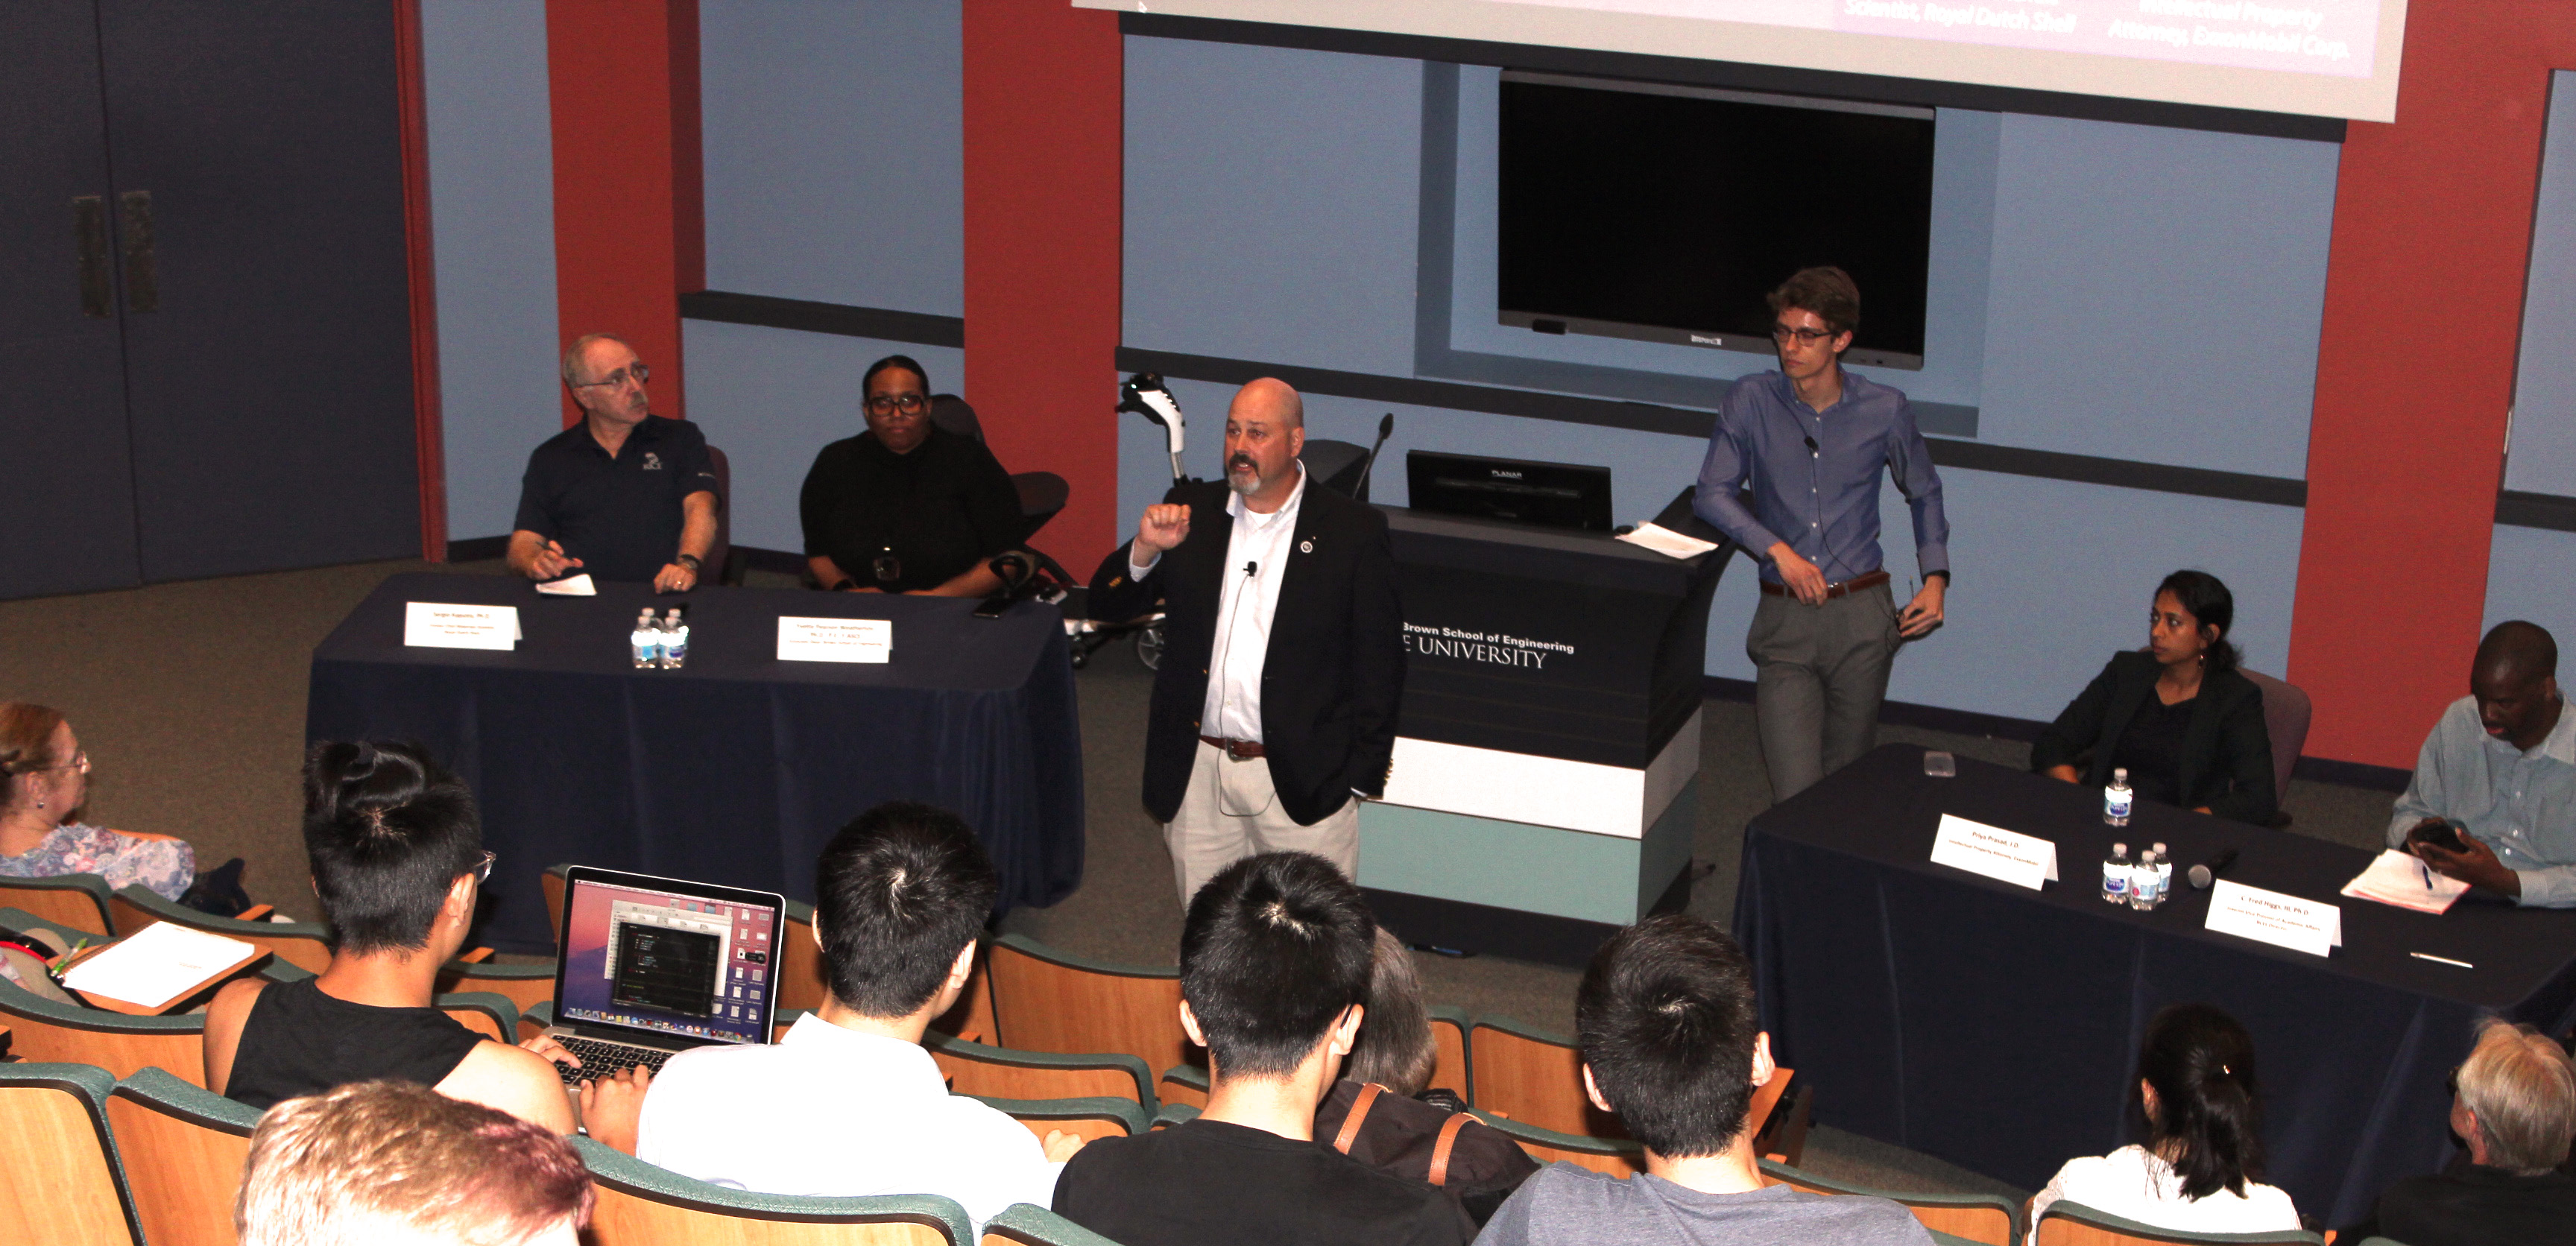 Rcel Panel Discussion Brings Real World Ethical Dilemmas